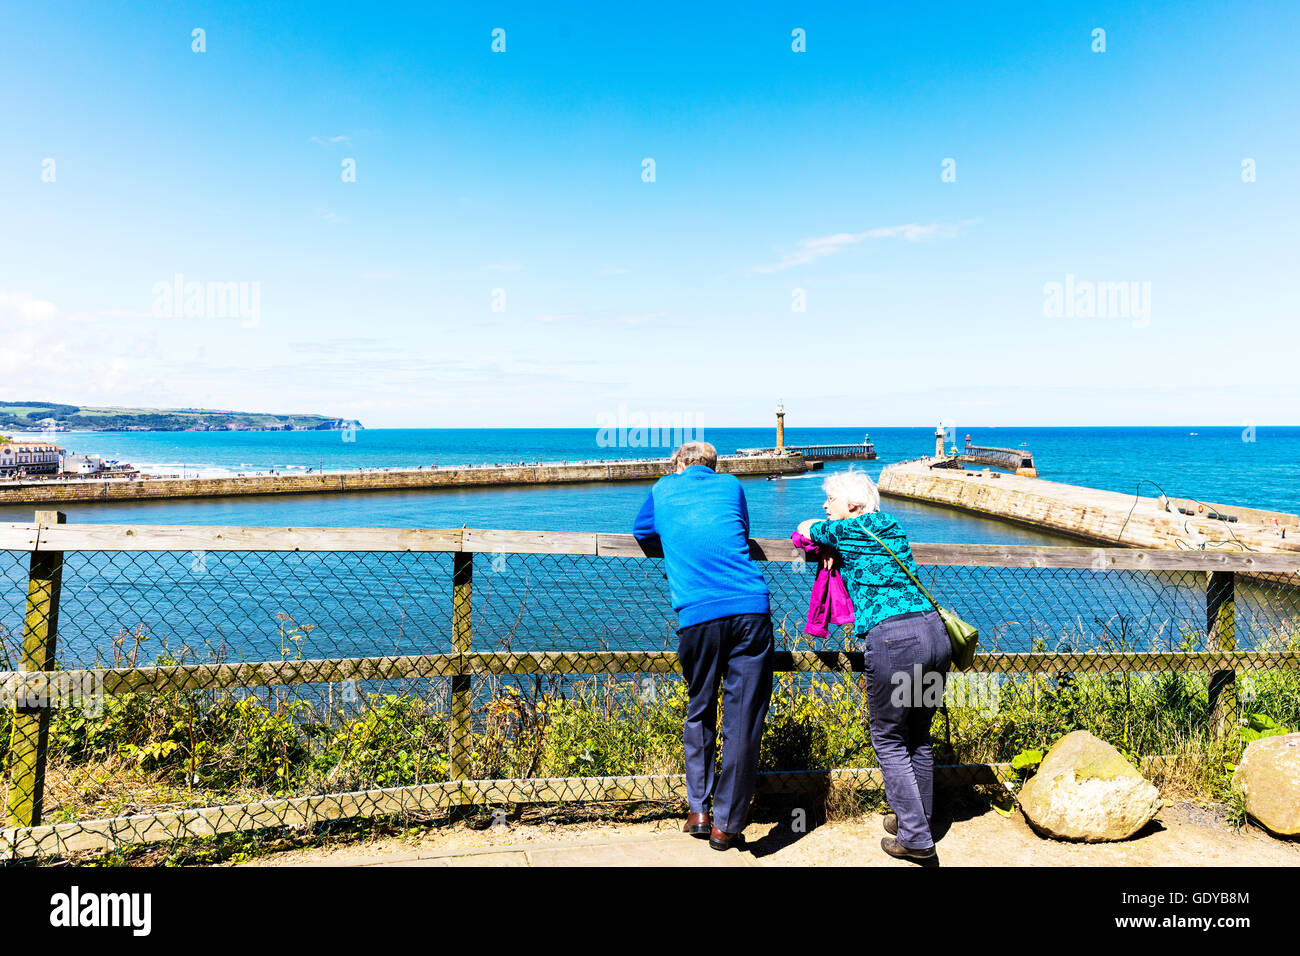 Old people reminiscing looking out to sea remembering better times past pastimes UK England GB - Stock Image